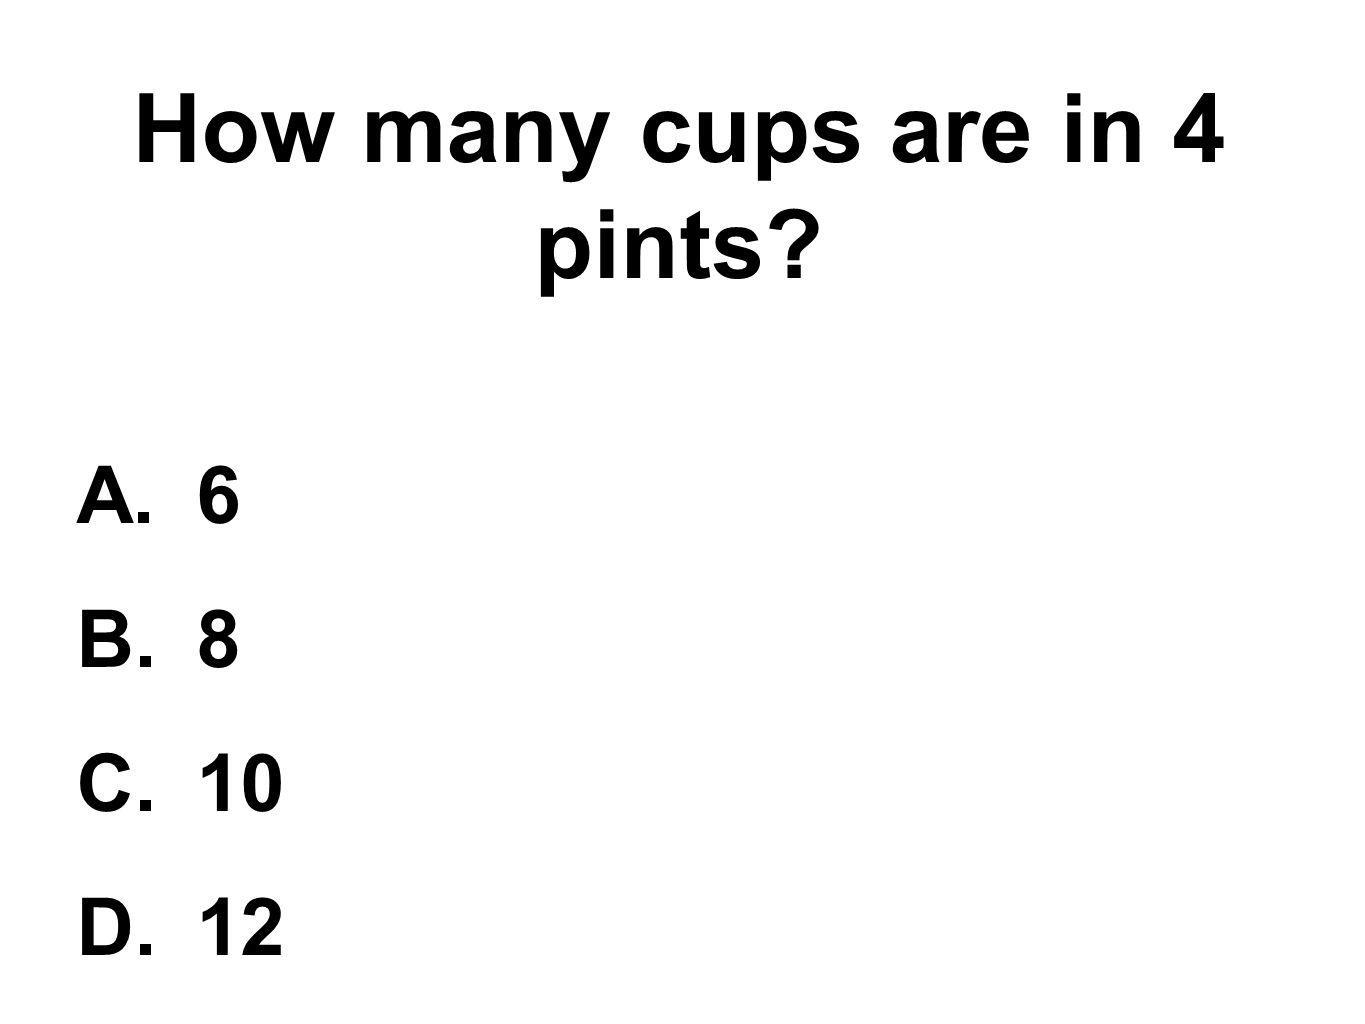 How many cups are in 4 pints